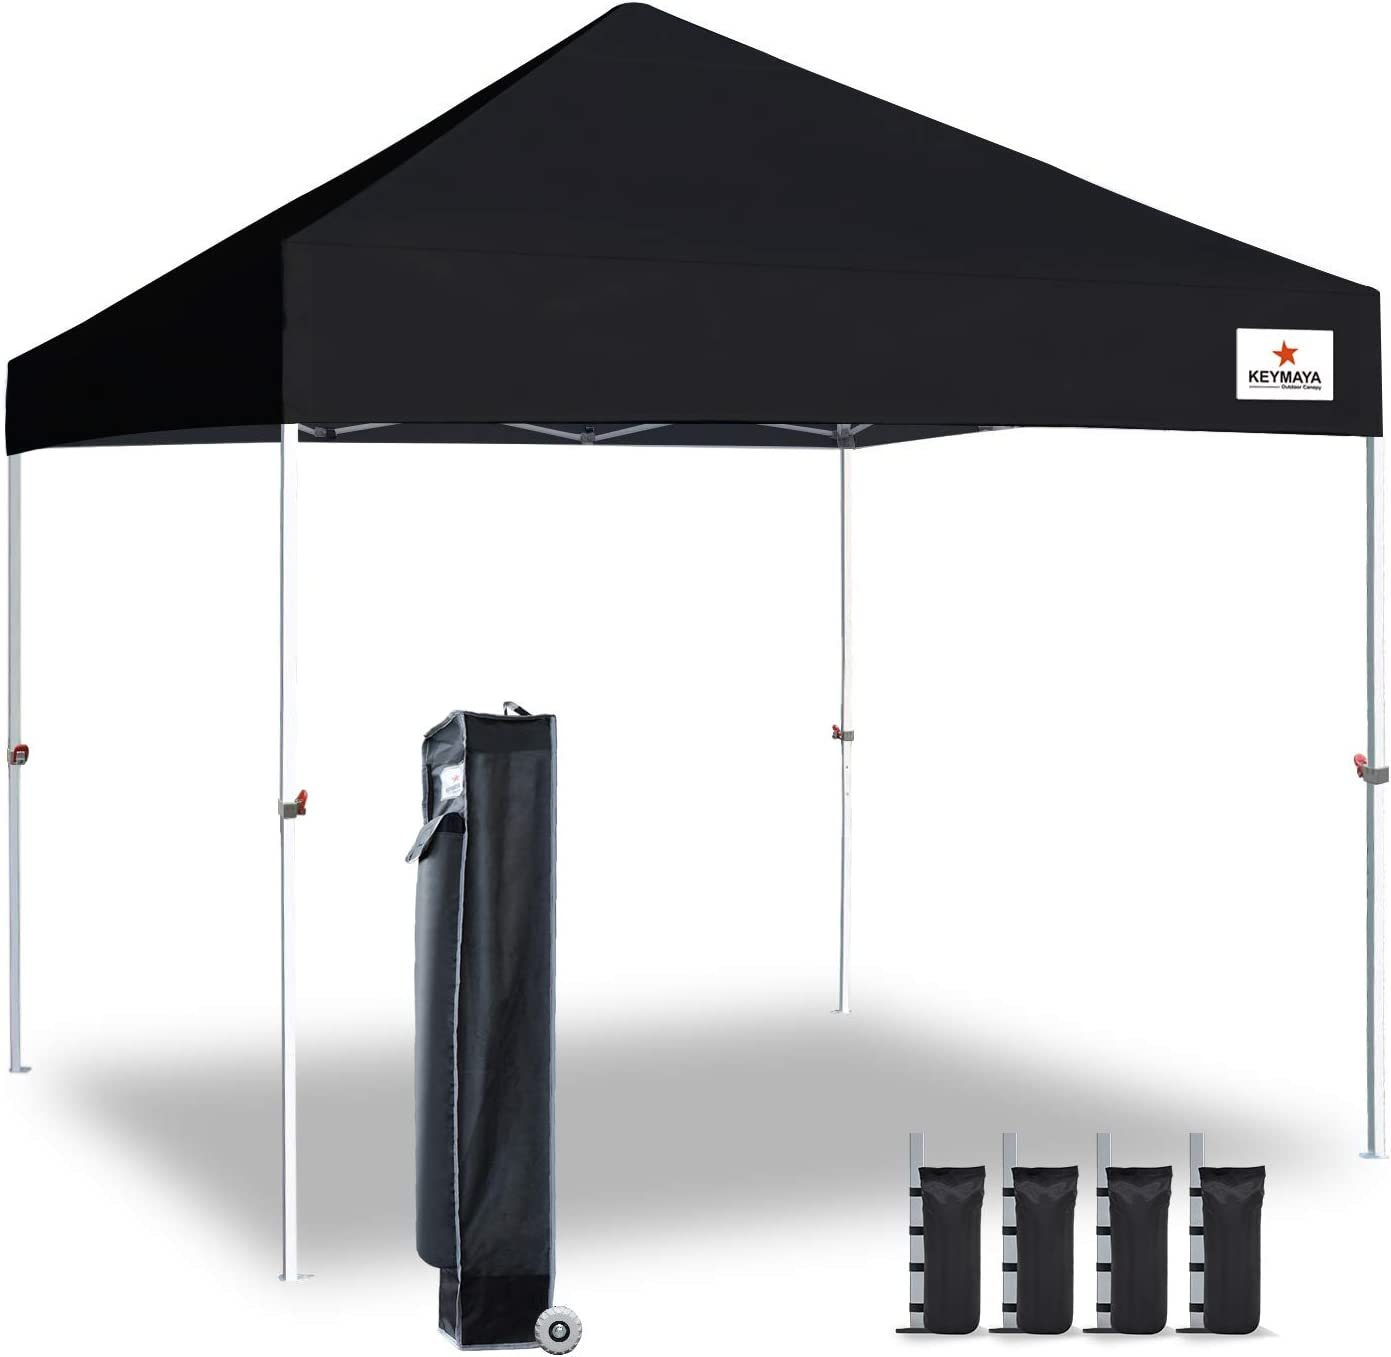 Amazon Com Keymaya 10x10 Ez Pop Up Canopy Tent Commercial Instant Shelter Canopies With Heavy Duty Roller Bag Bonus 4 Canopy Sand Bags Black Garden Outdoor